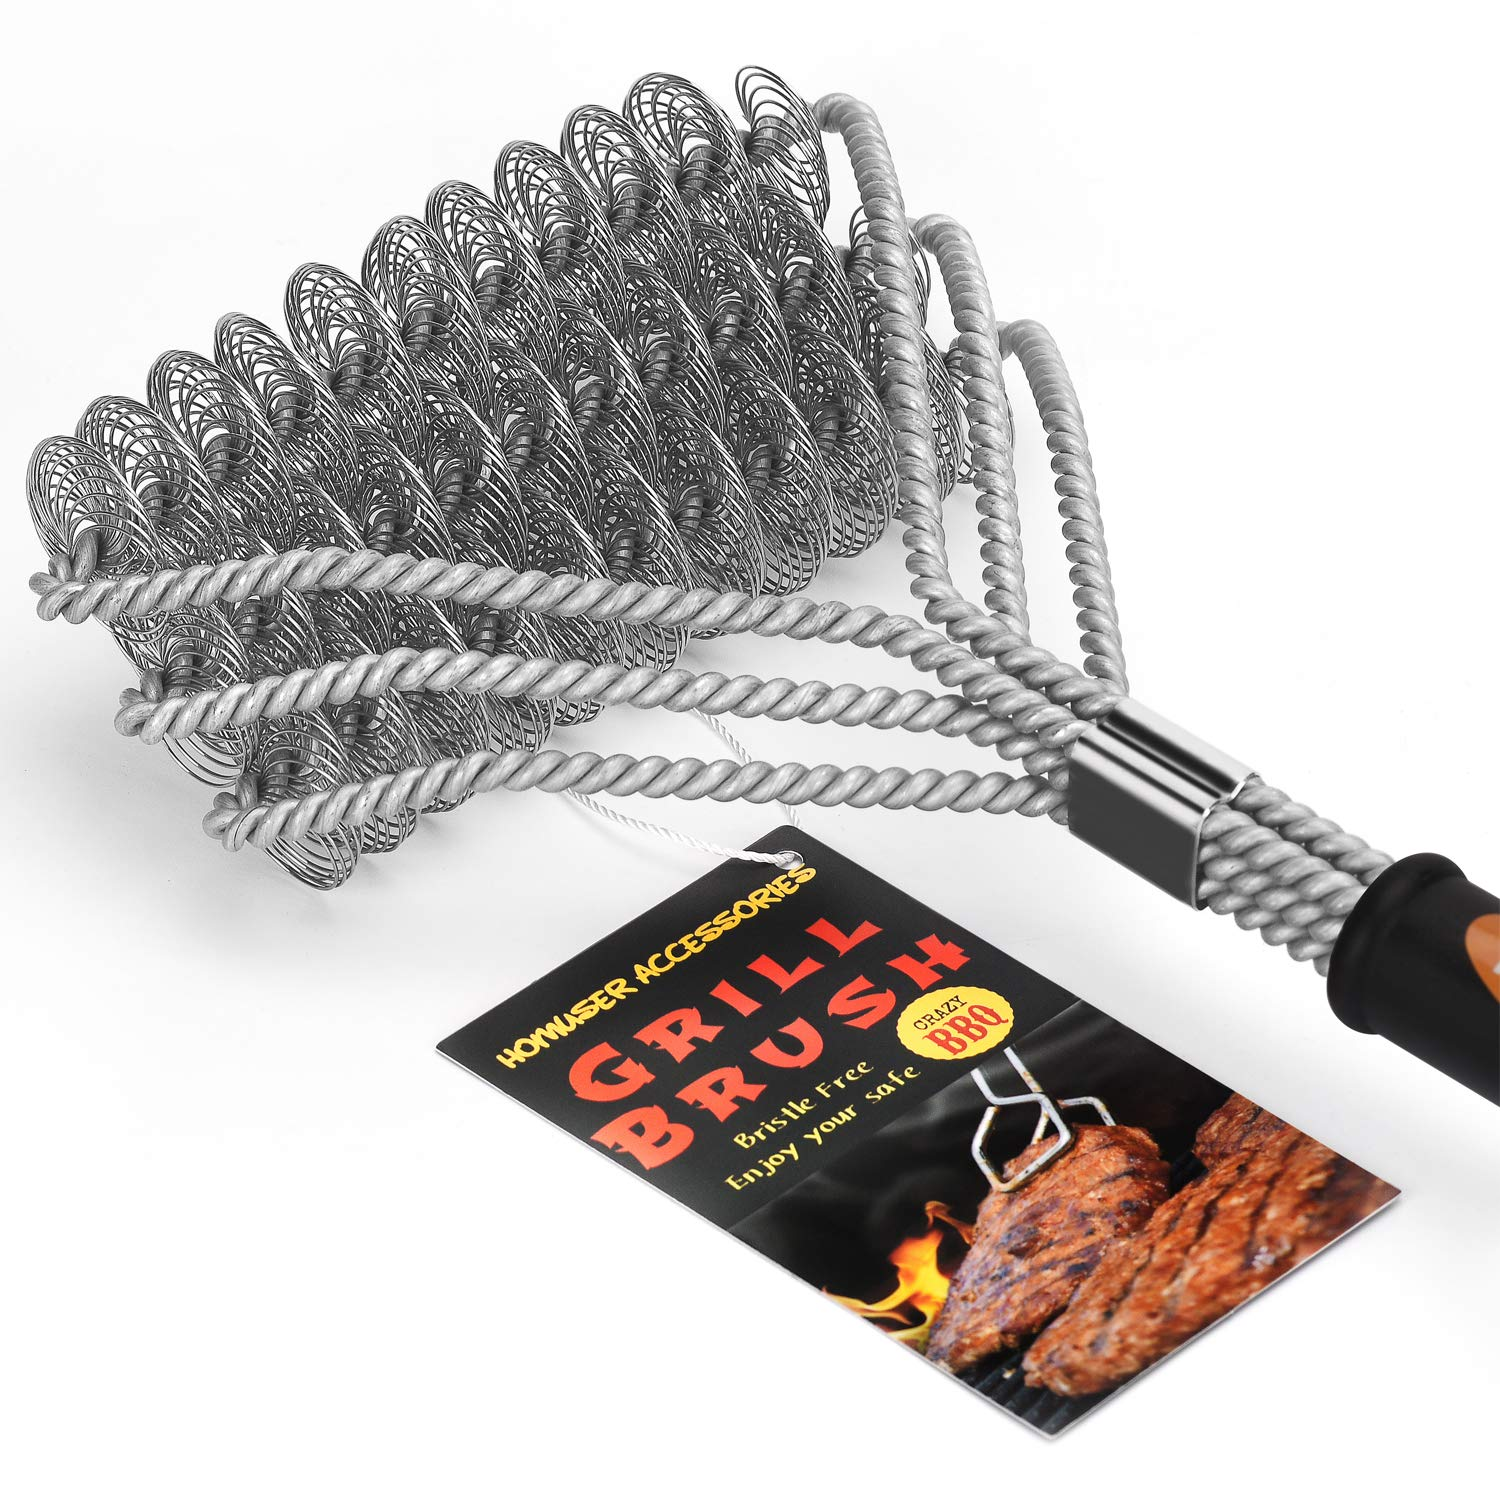 Homuser Grill Brush Bristle Free - Safe BBQ Cleaning Barbecue Brush 18'' Best Stainless Steel Grilling Accessories Cleaner for Weber Gas/Charcoal Porcelain/Ceramic/Iron/Steel Grates